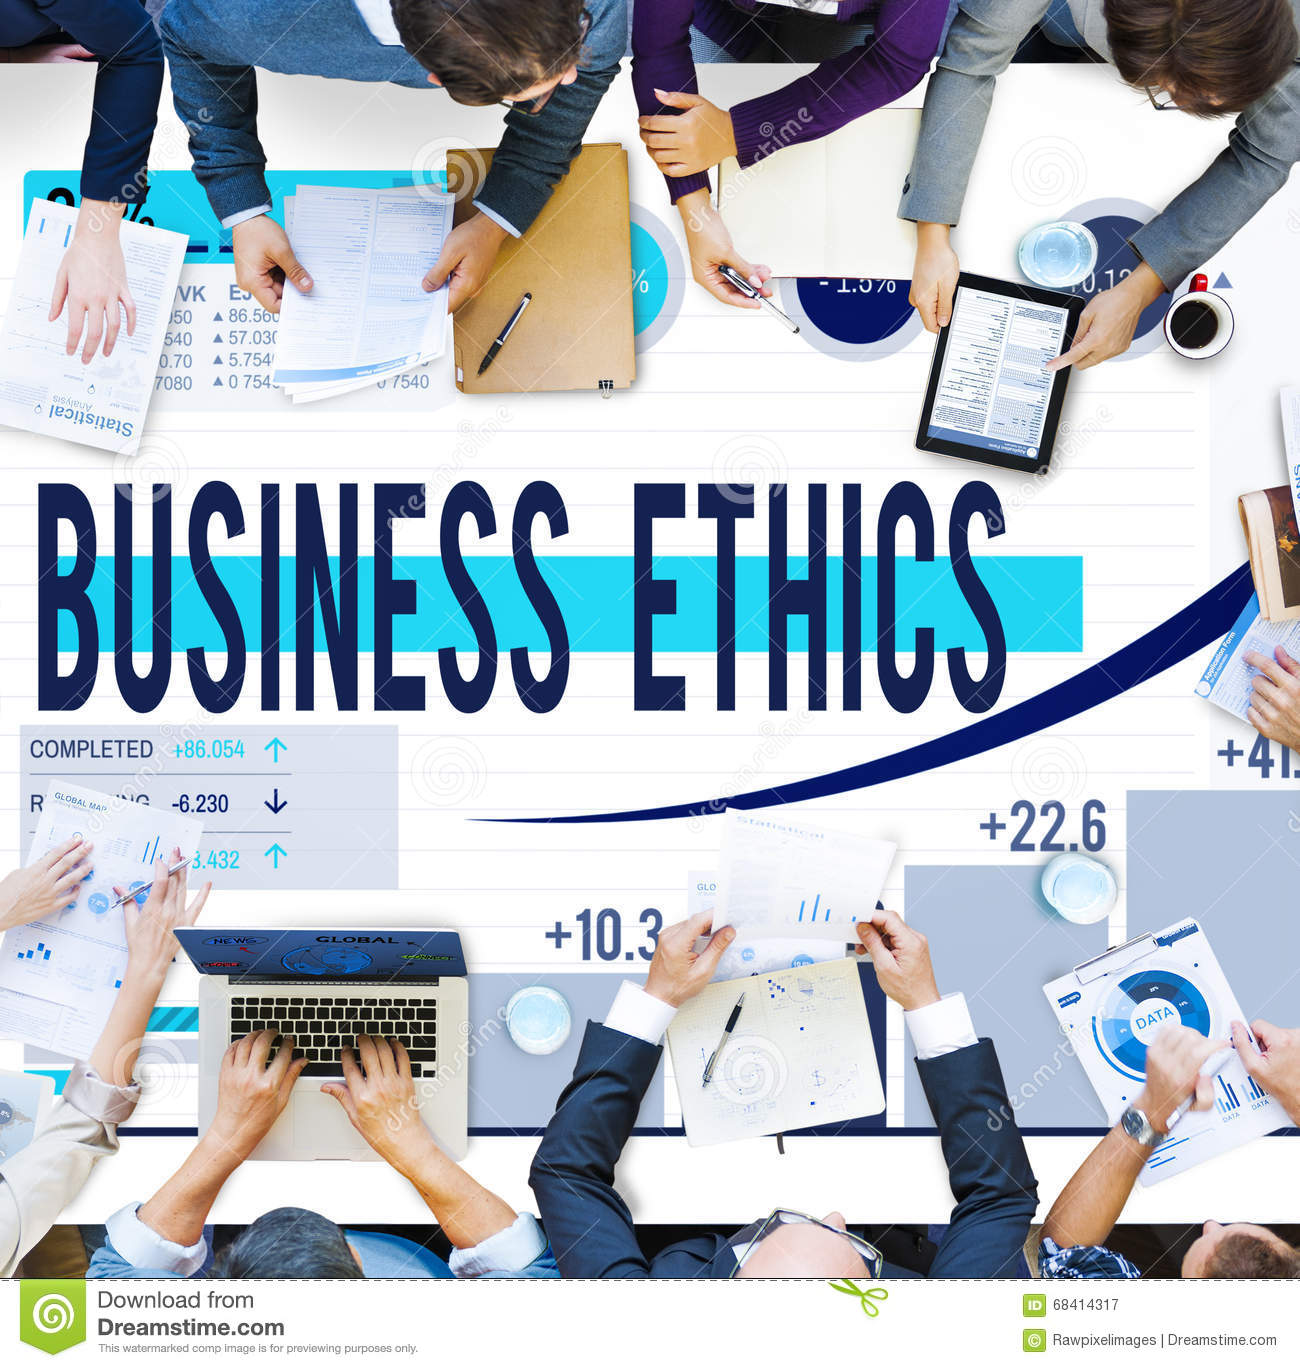 diversity and ethics in business